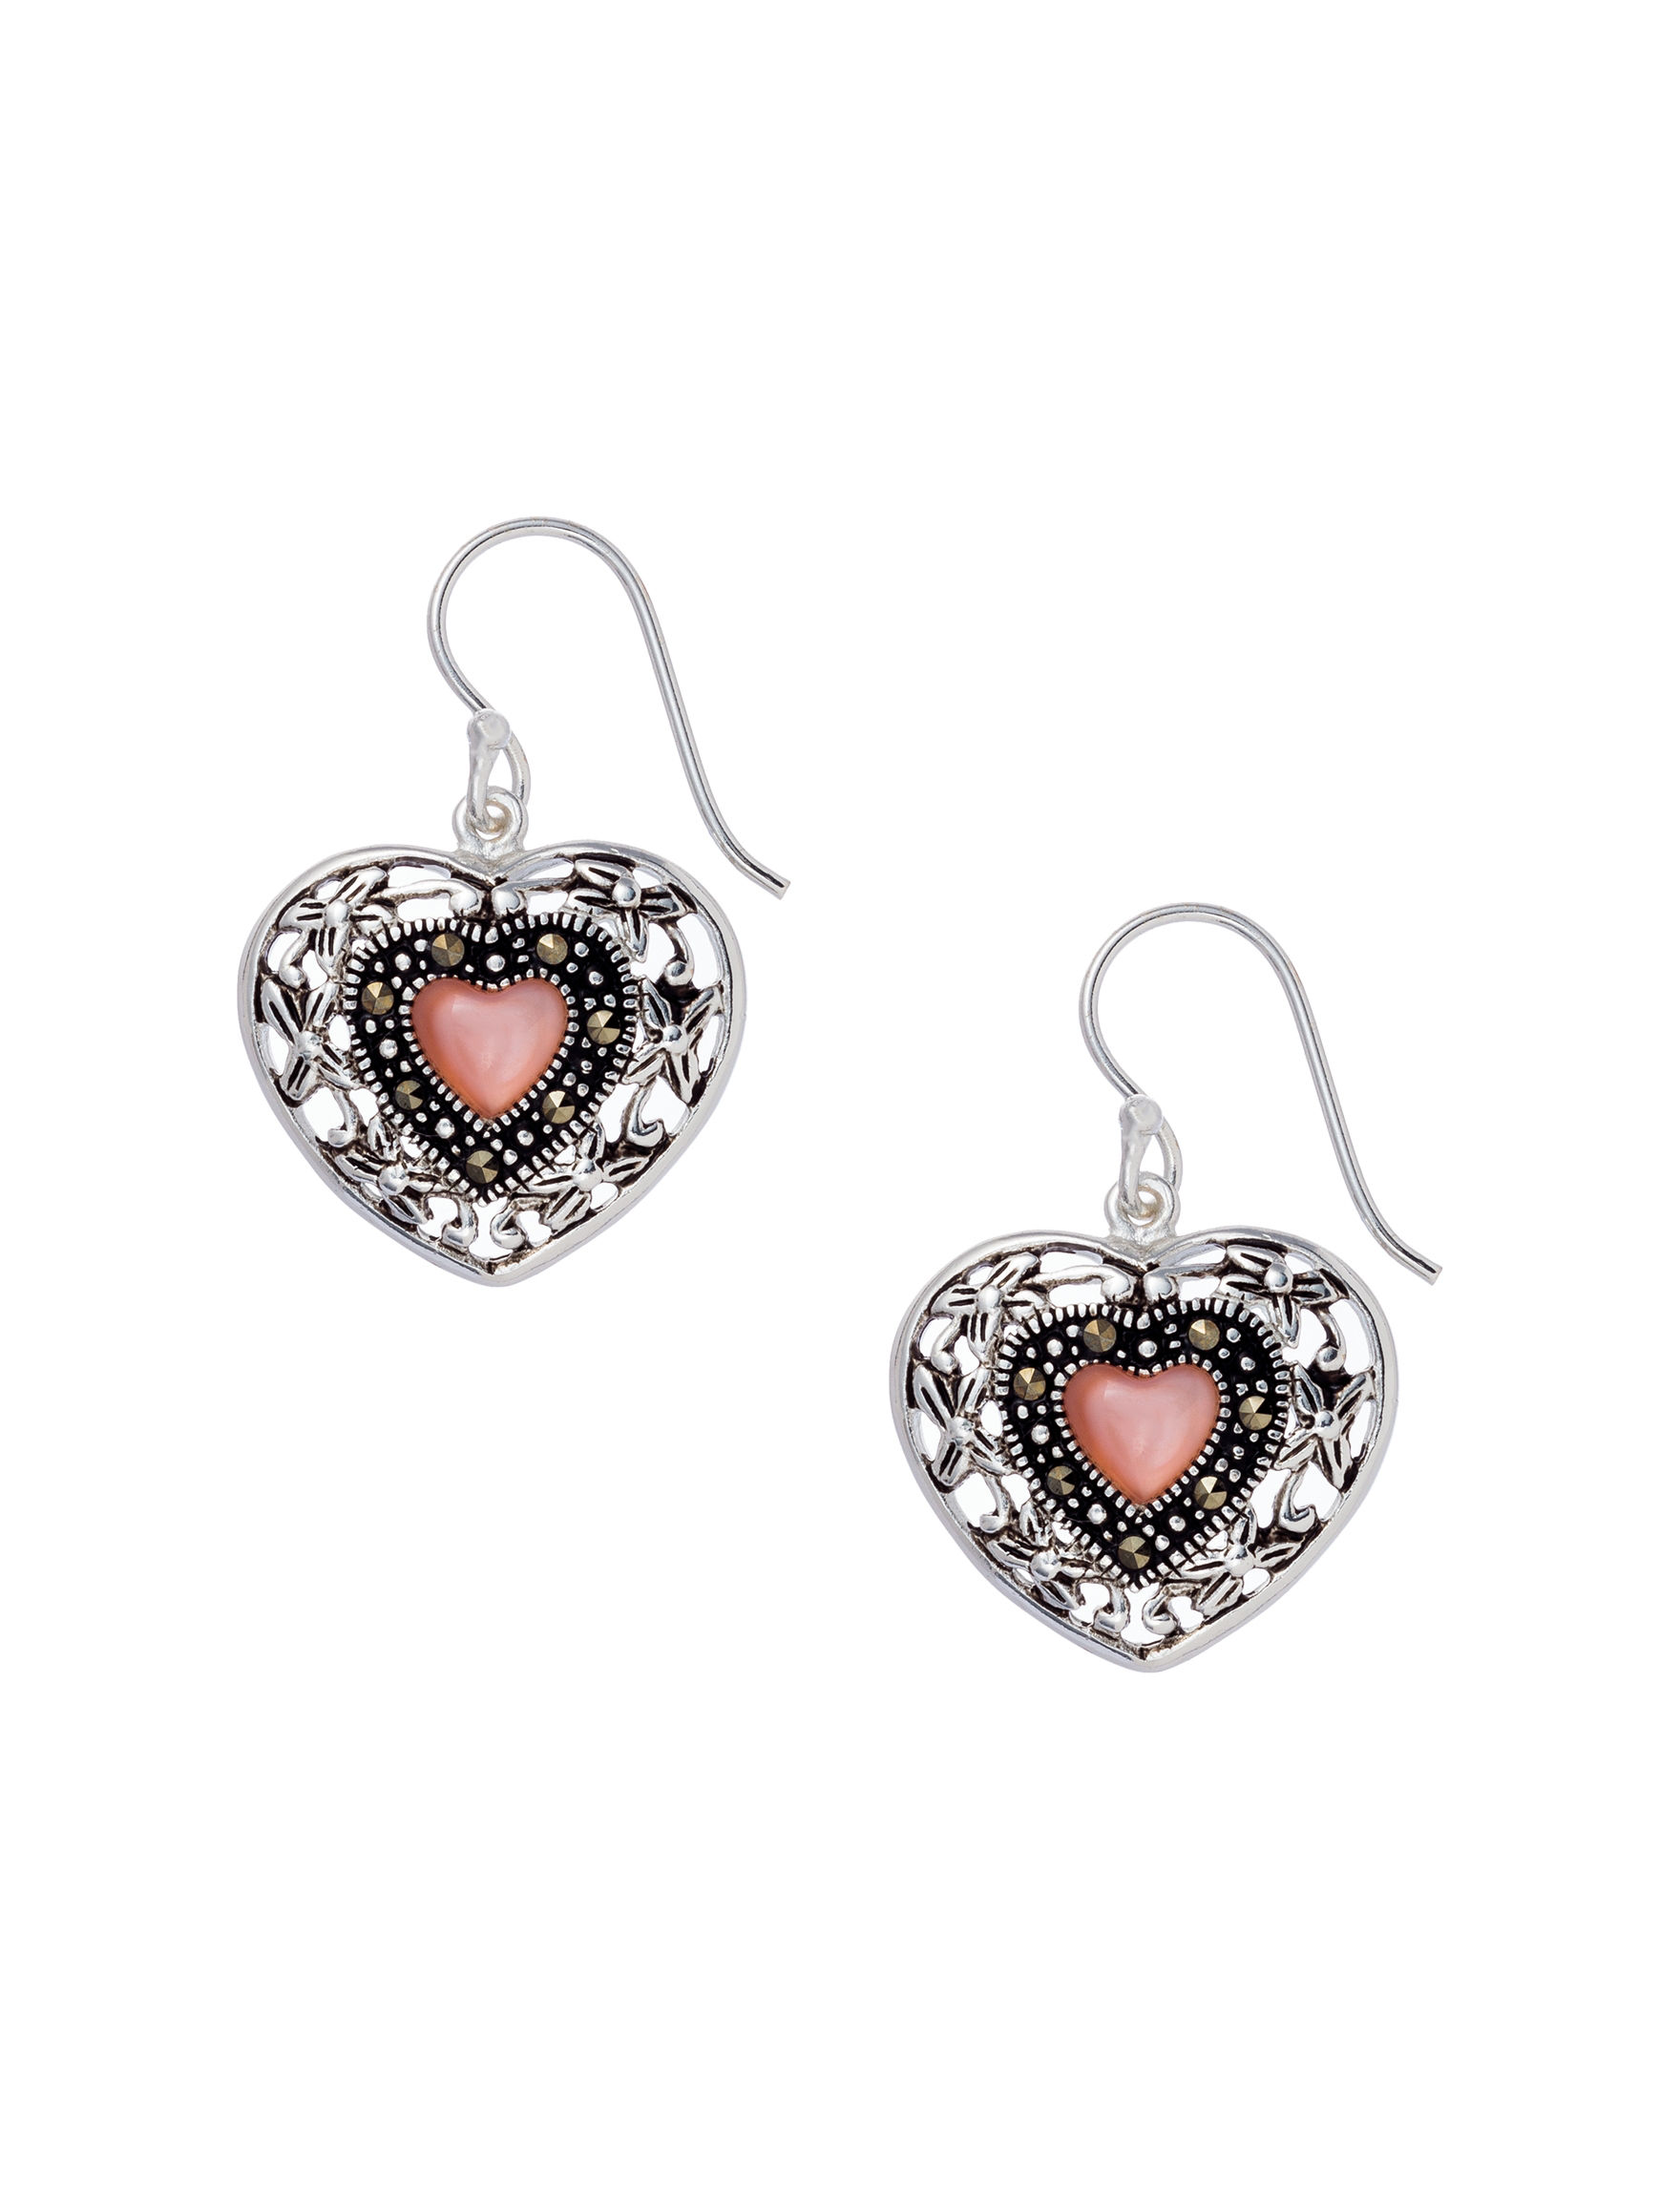 Marsala Silver Drops Earrings Fine Jewelry